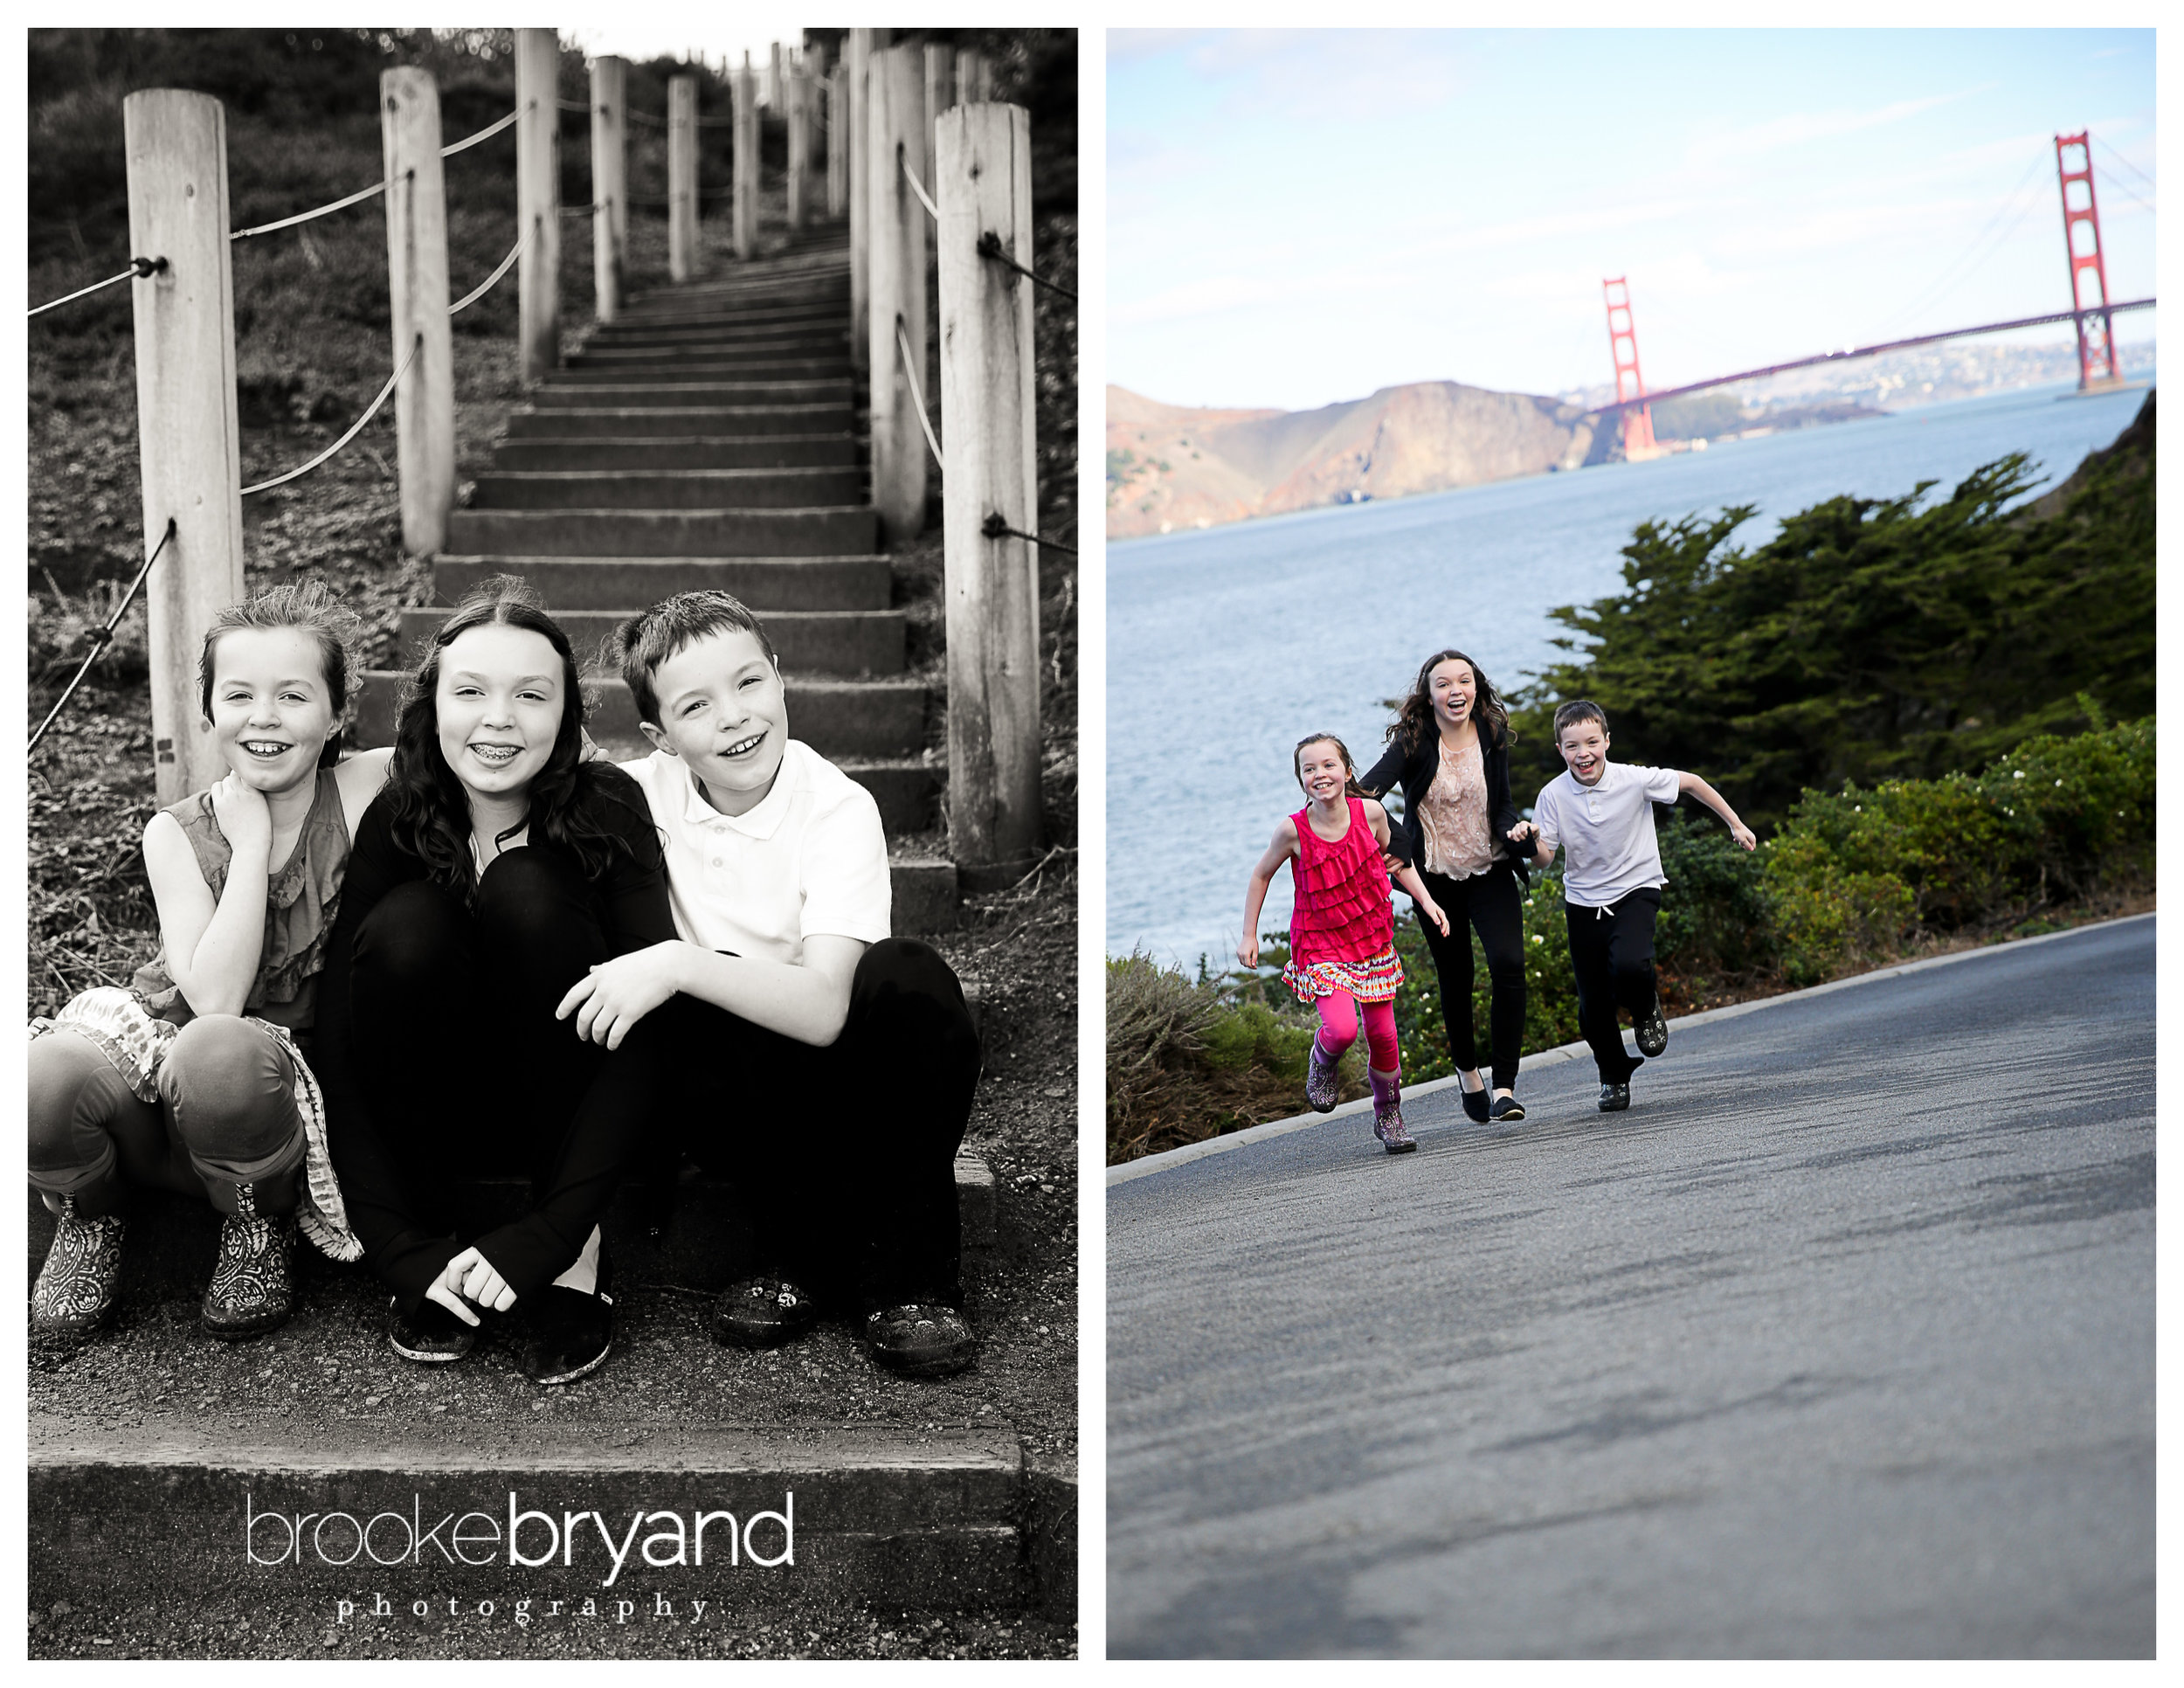 2up-daly-brooke-bryand-photography-china-beach-family-photos-san-francisco-family-photographer-1.jpg